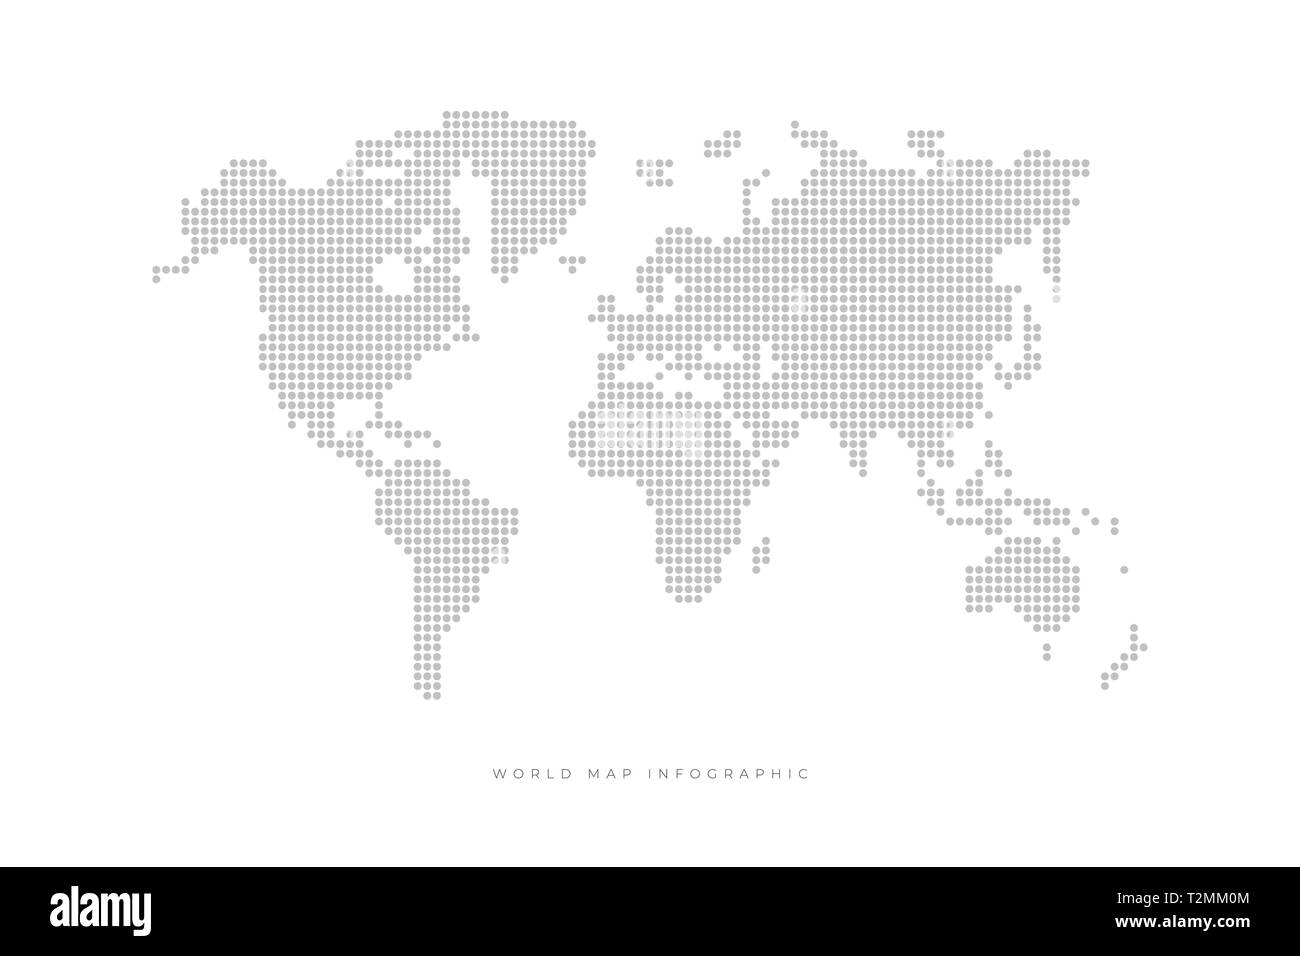 Simple Dotted Political World Map  Template with grey points